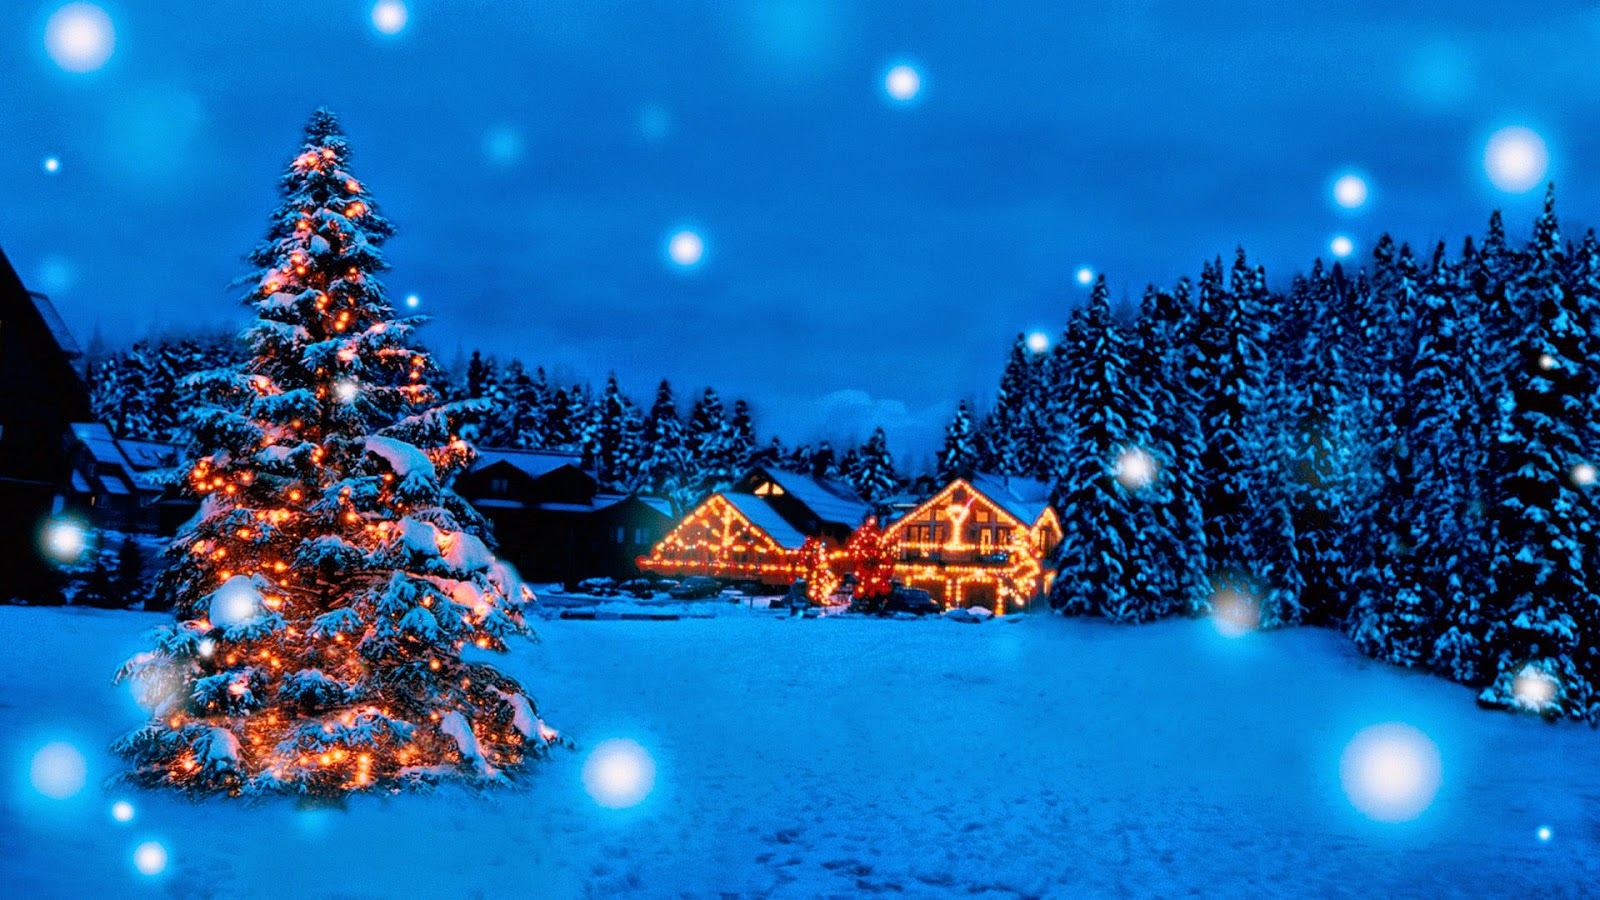 16381 christmas hd wallpaper widescreen 1600x900